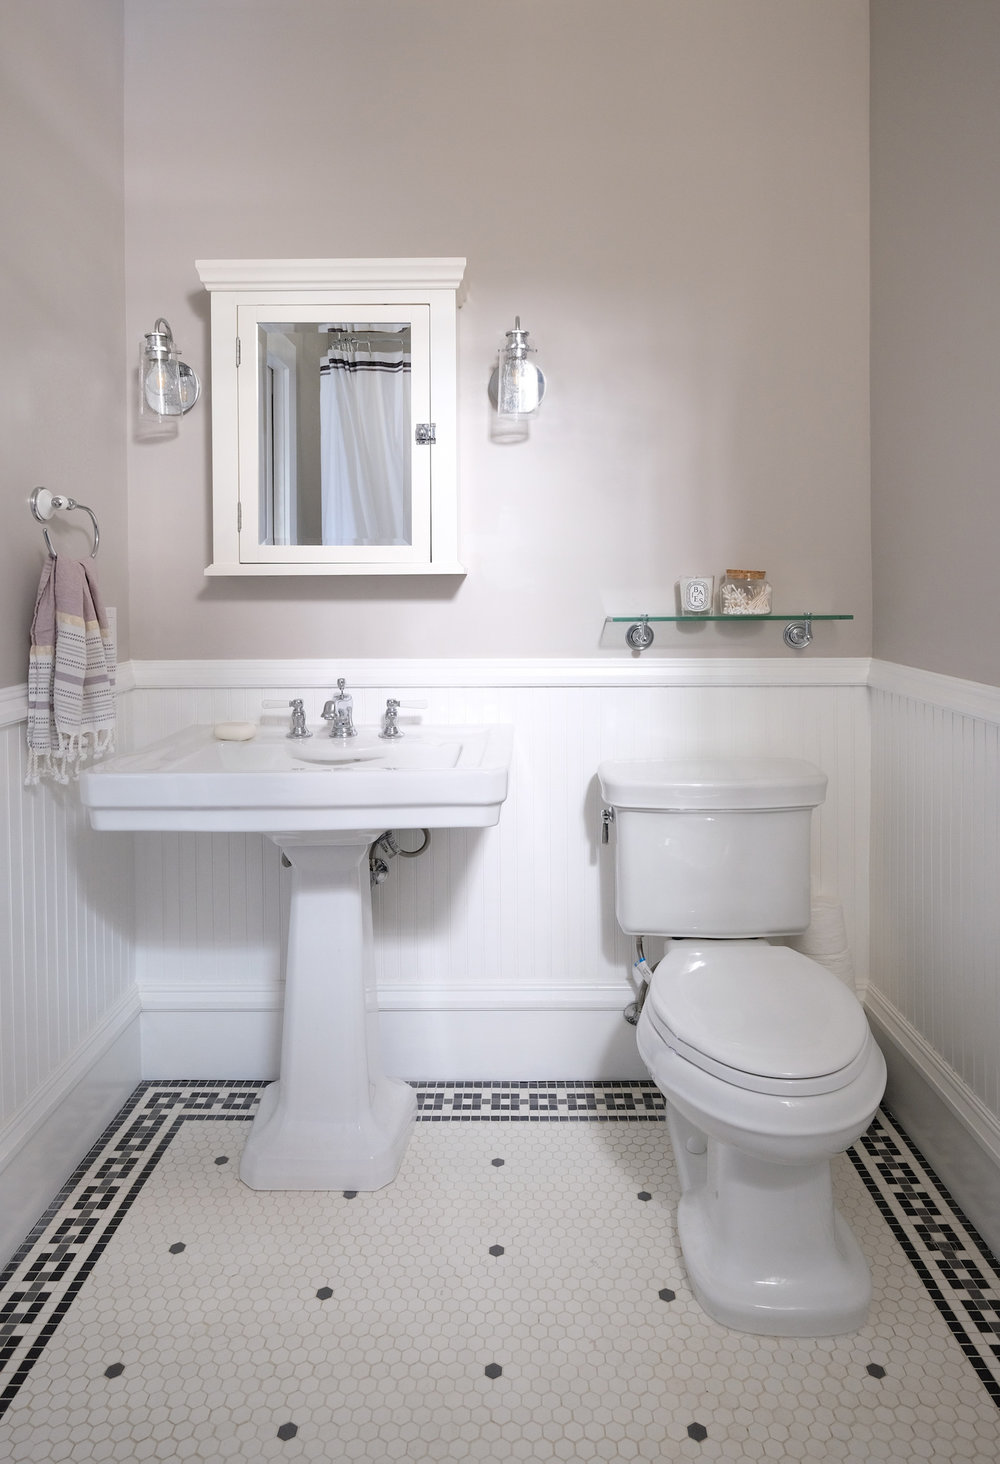 white bathroom with grey and white mosaic floor tile.jpg